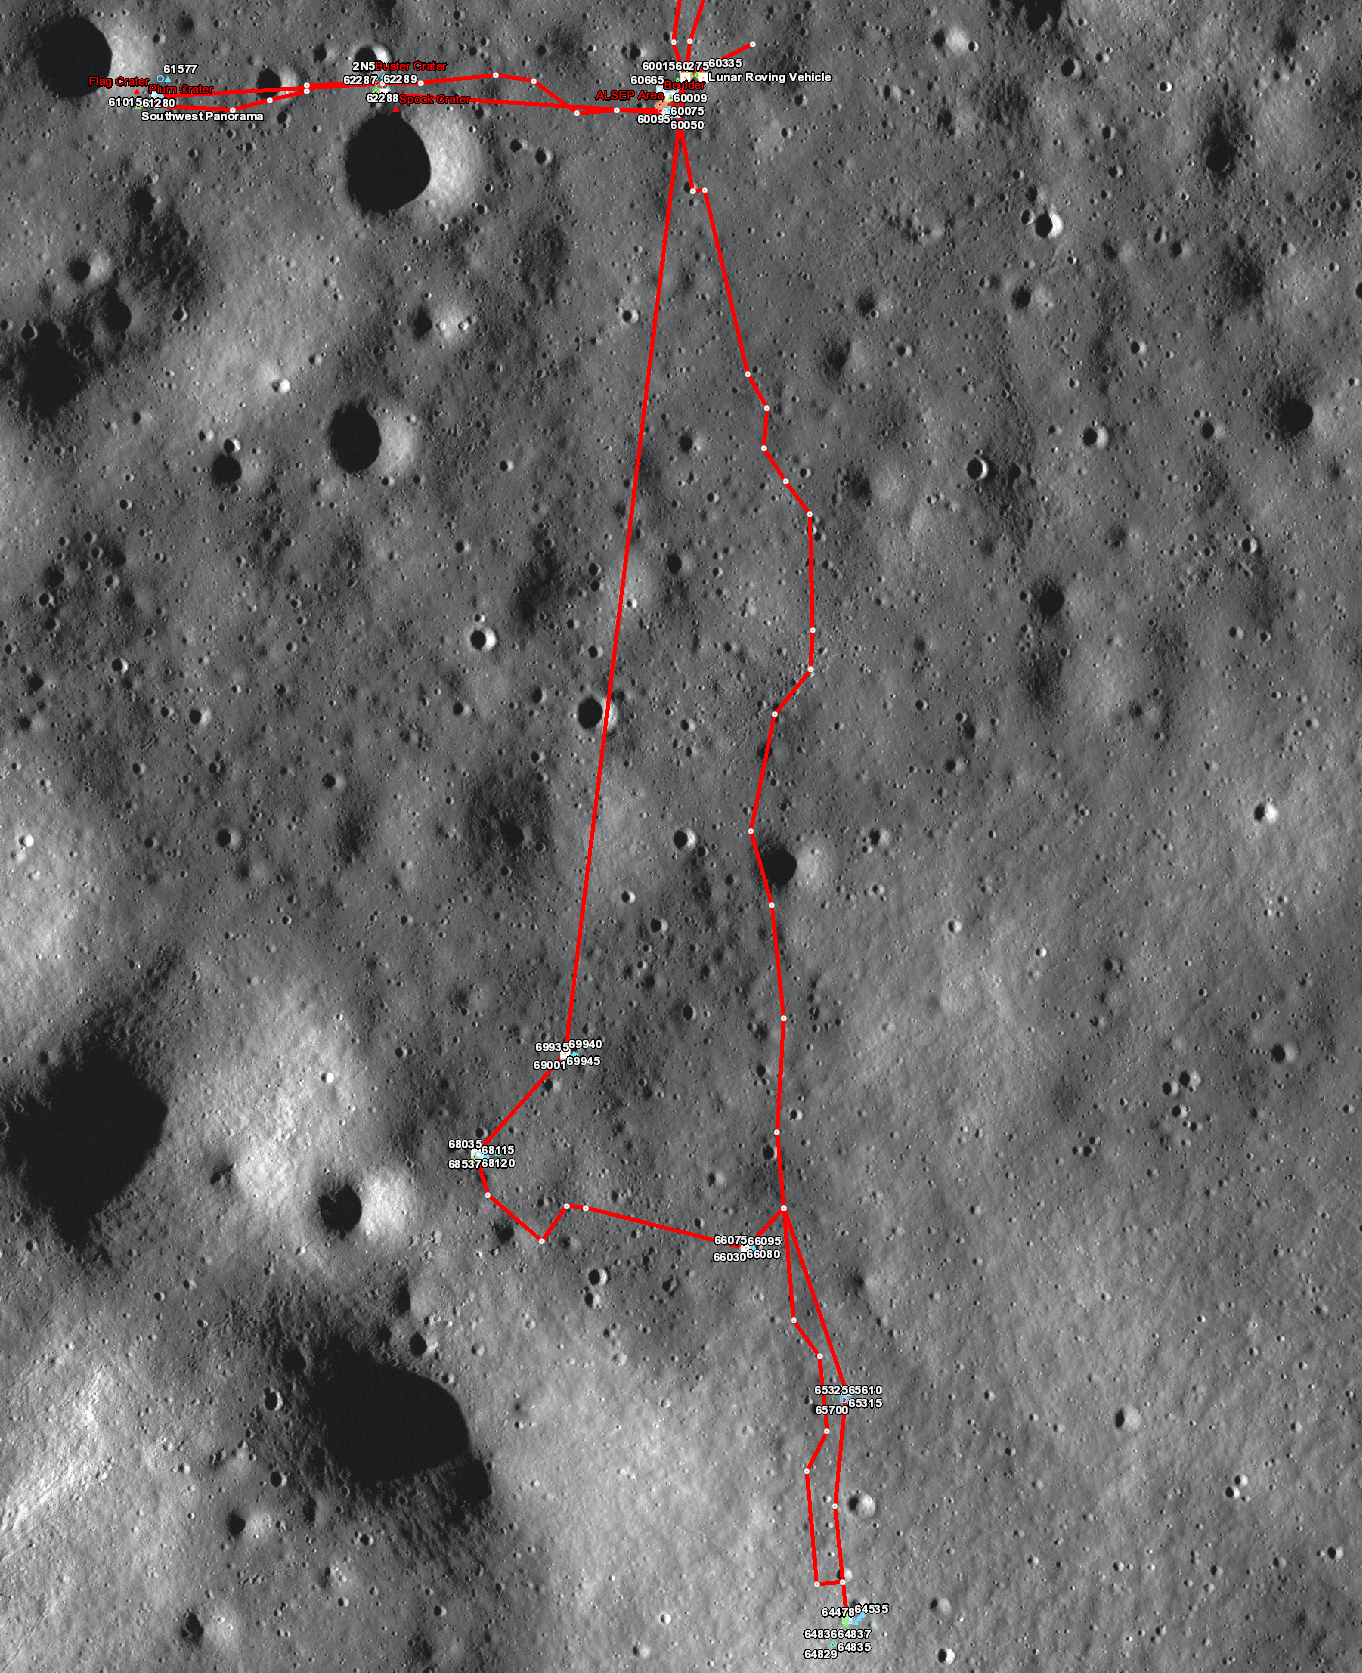 Apollo 16 sample location map (bottom)